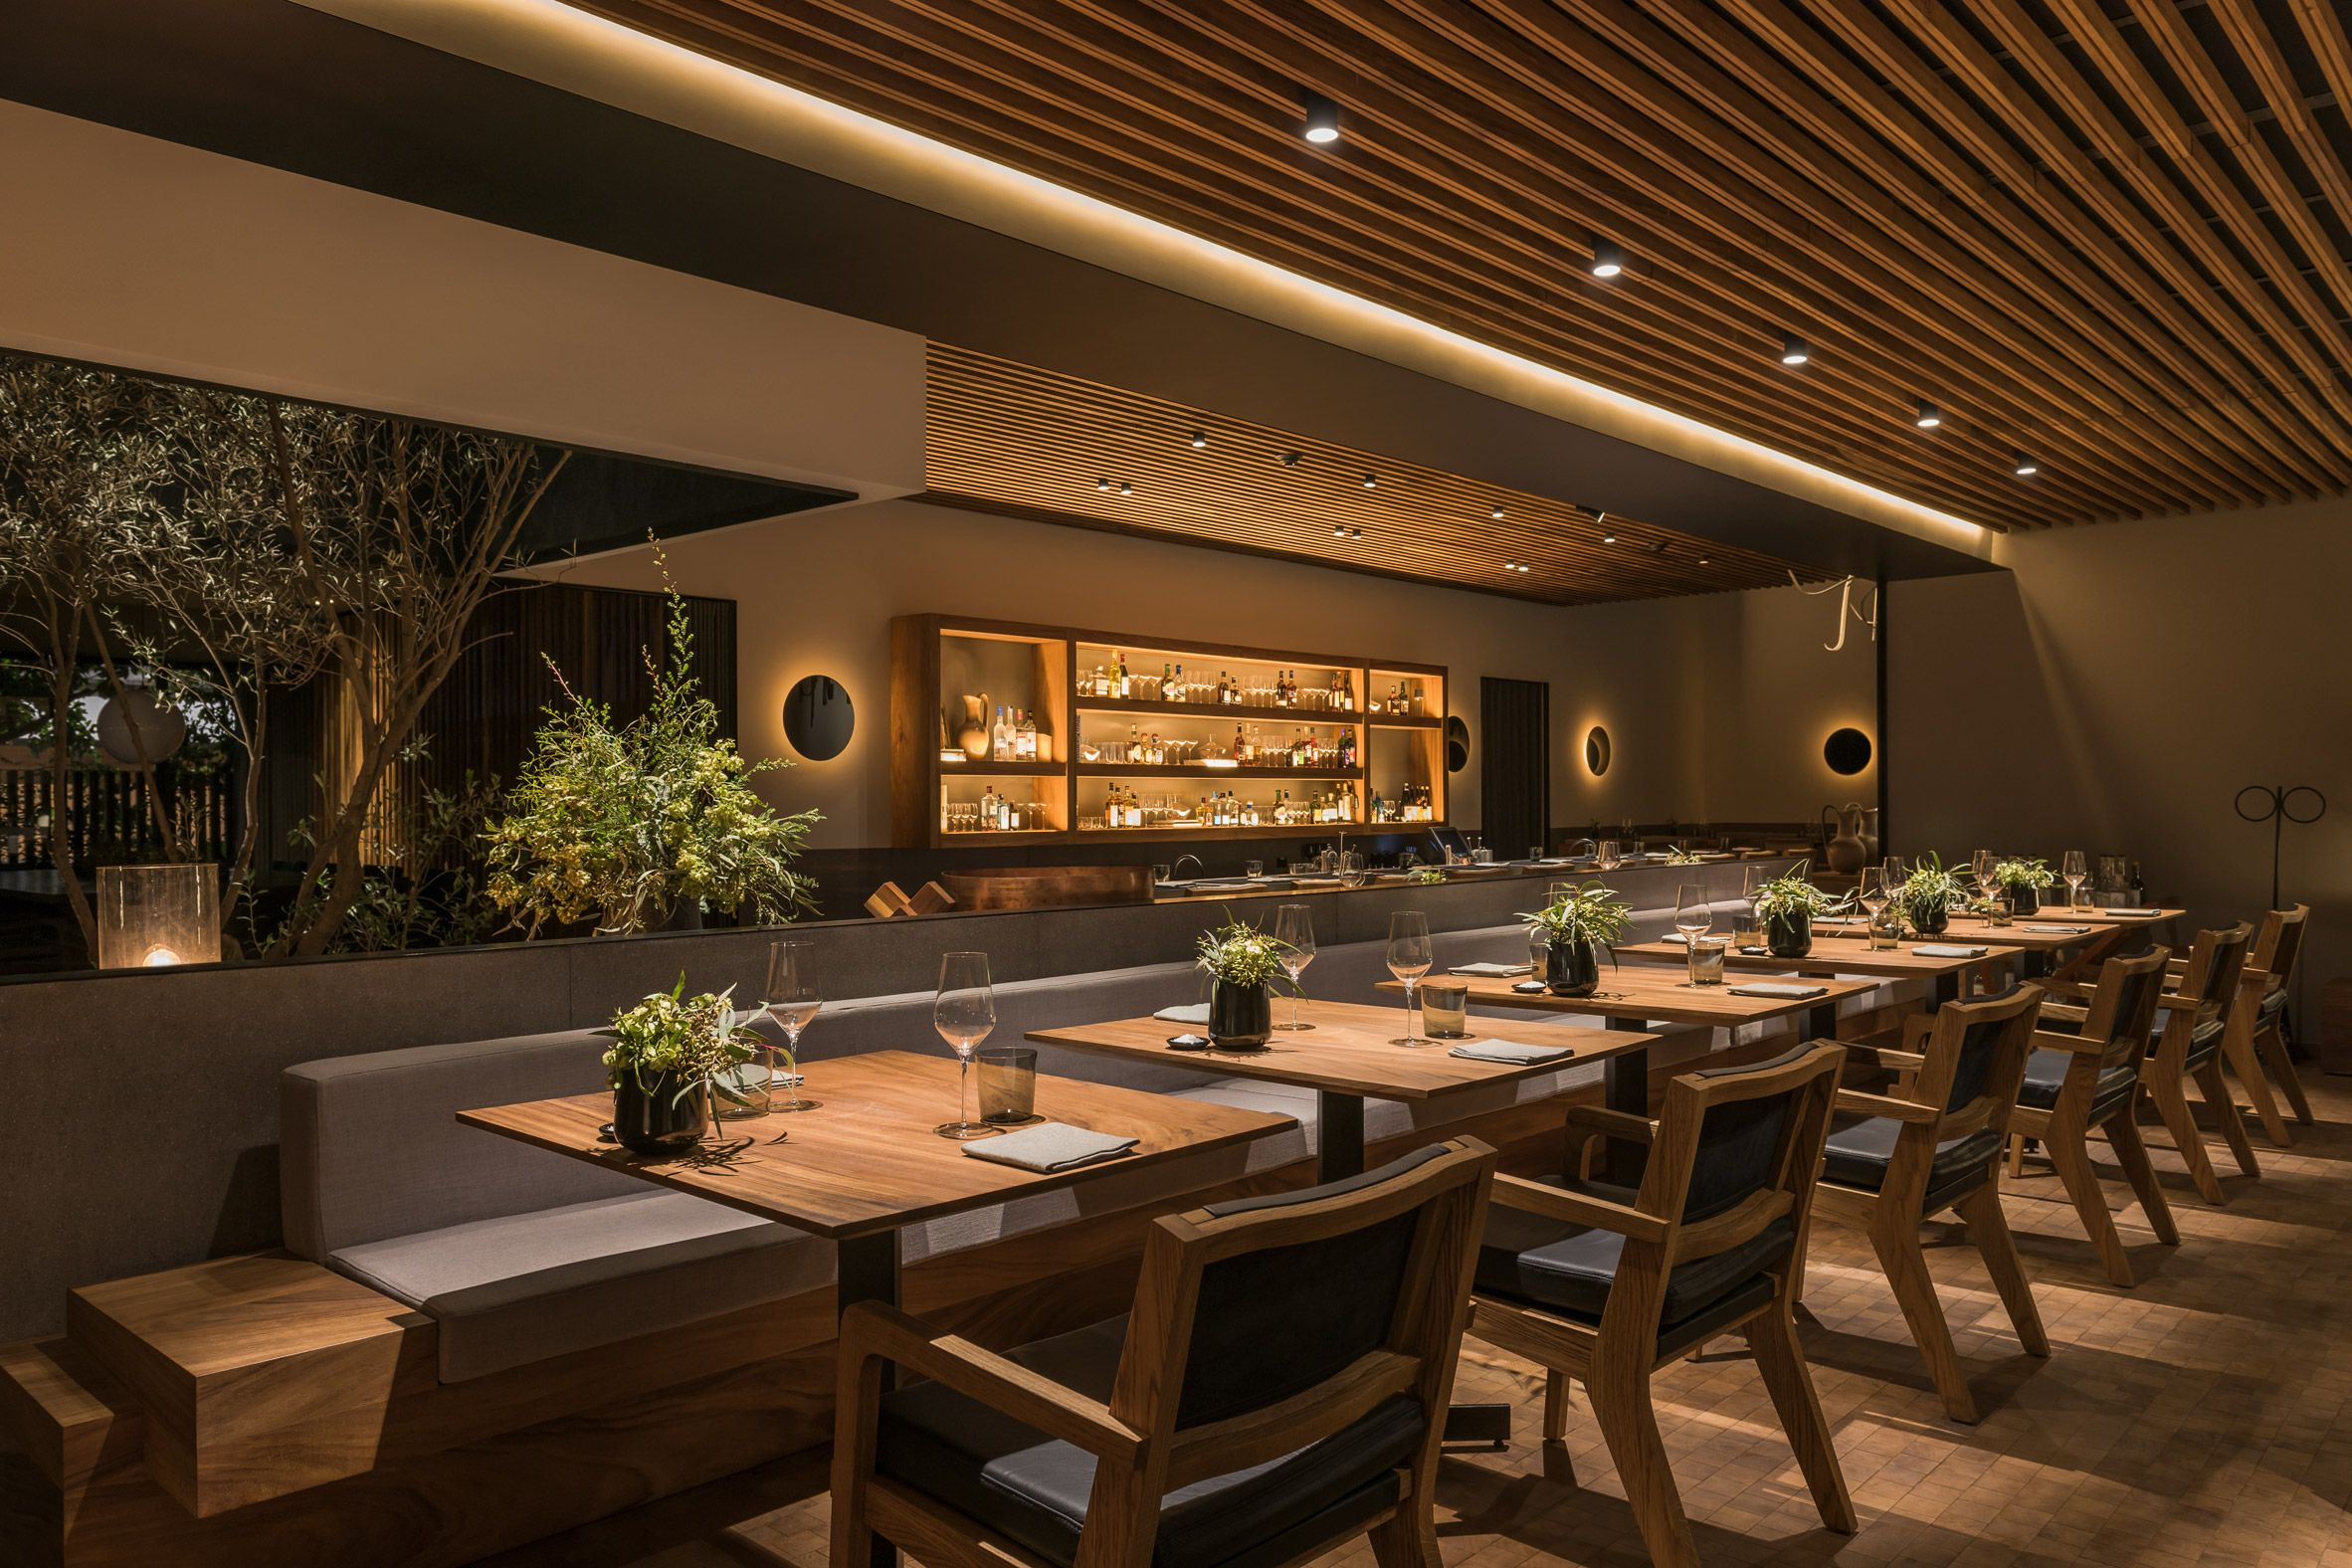 Gardens, Courtyards And Wooden Decks Lend A Domestic Feel To Mexico City  Restaurant Pujol, Which Was Named One Of The Best Places To Eat In The  World.